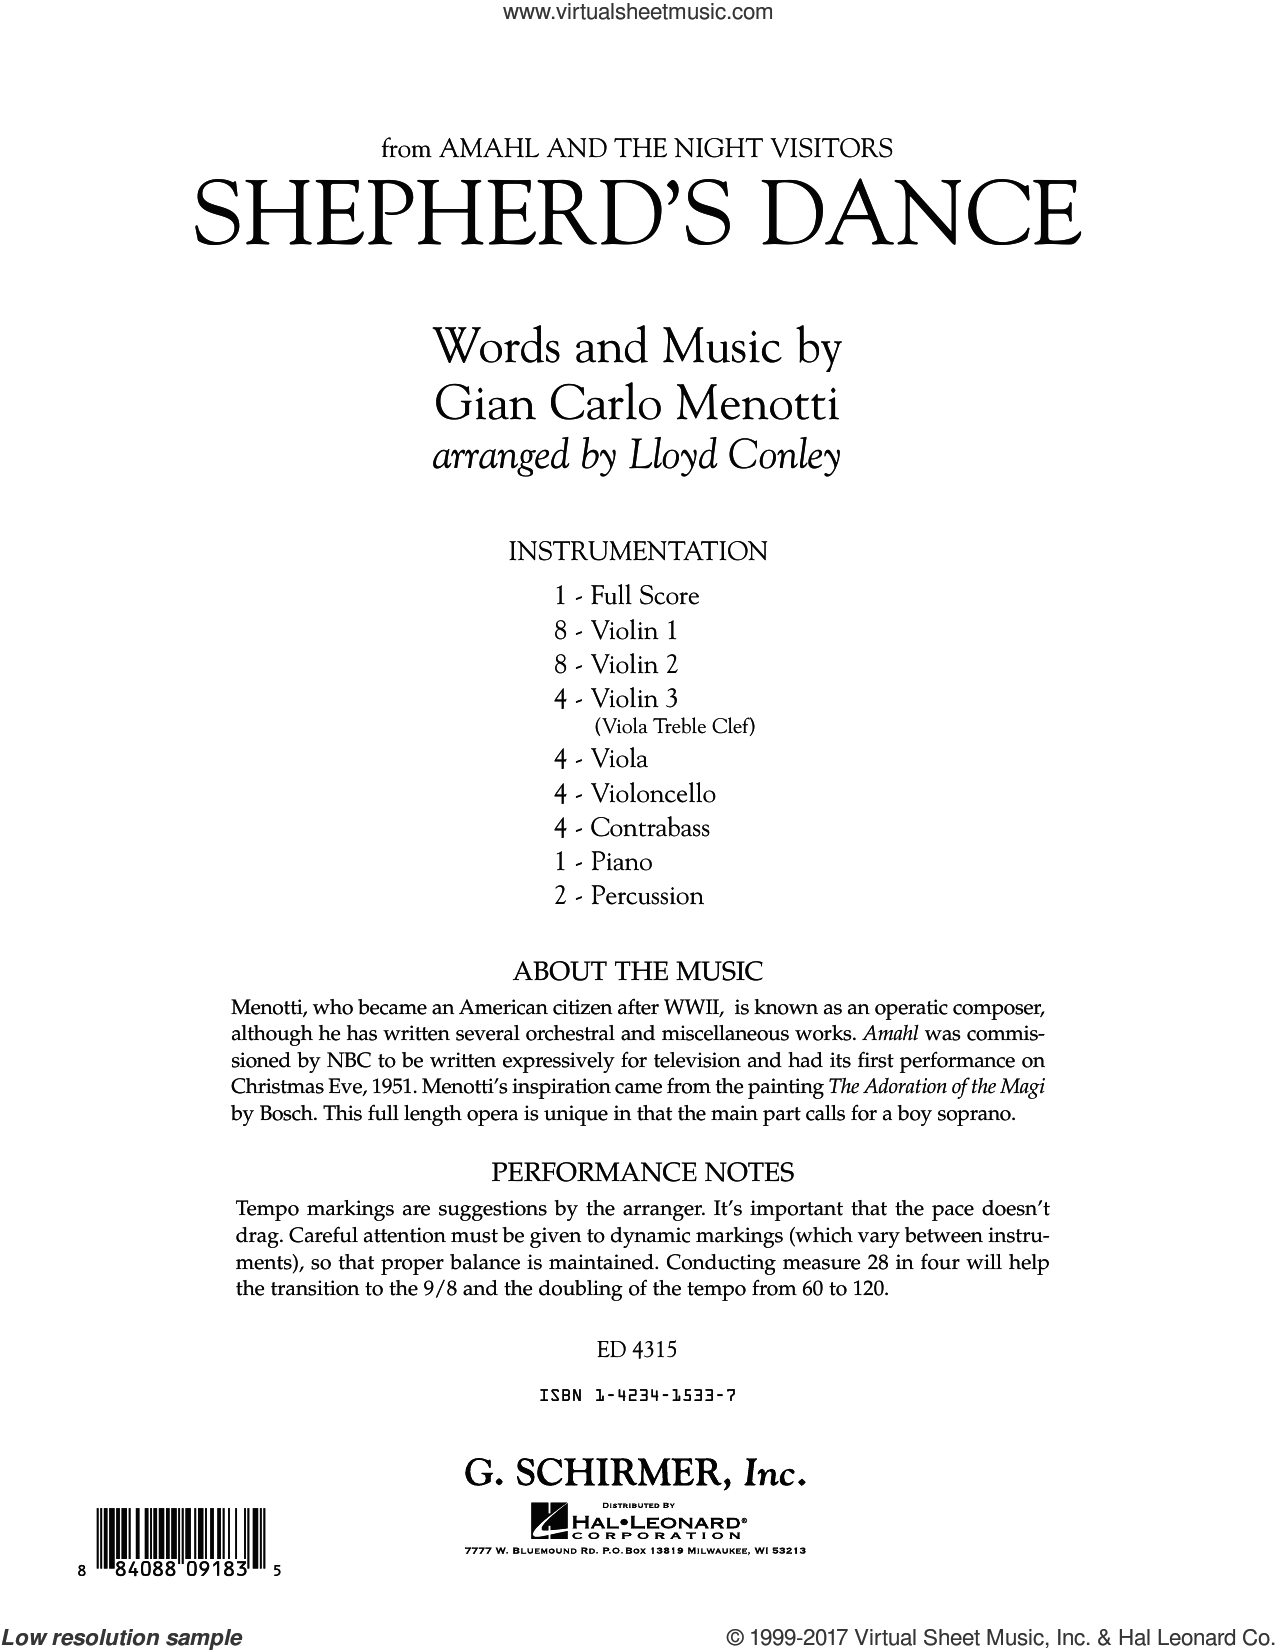 Shepherd's Dance (from Amahl and the Night Visitors) (COMPLETE) sheet music for orchestra by Lloyd Conley and Gian Carlo Menotti, classical score, intermediate skill level